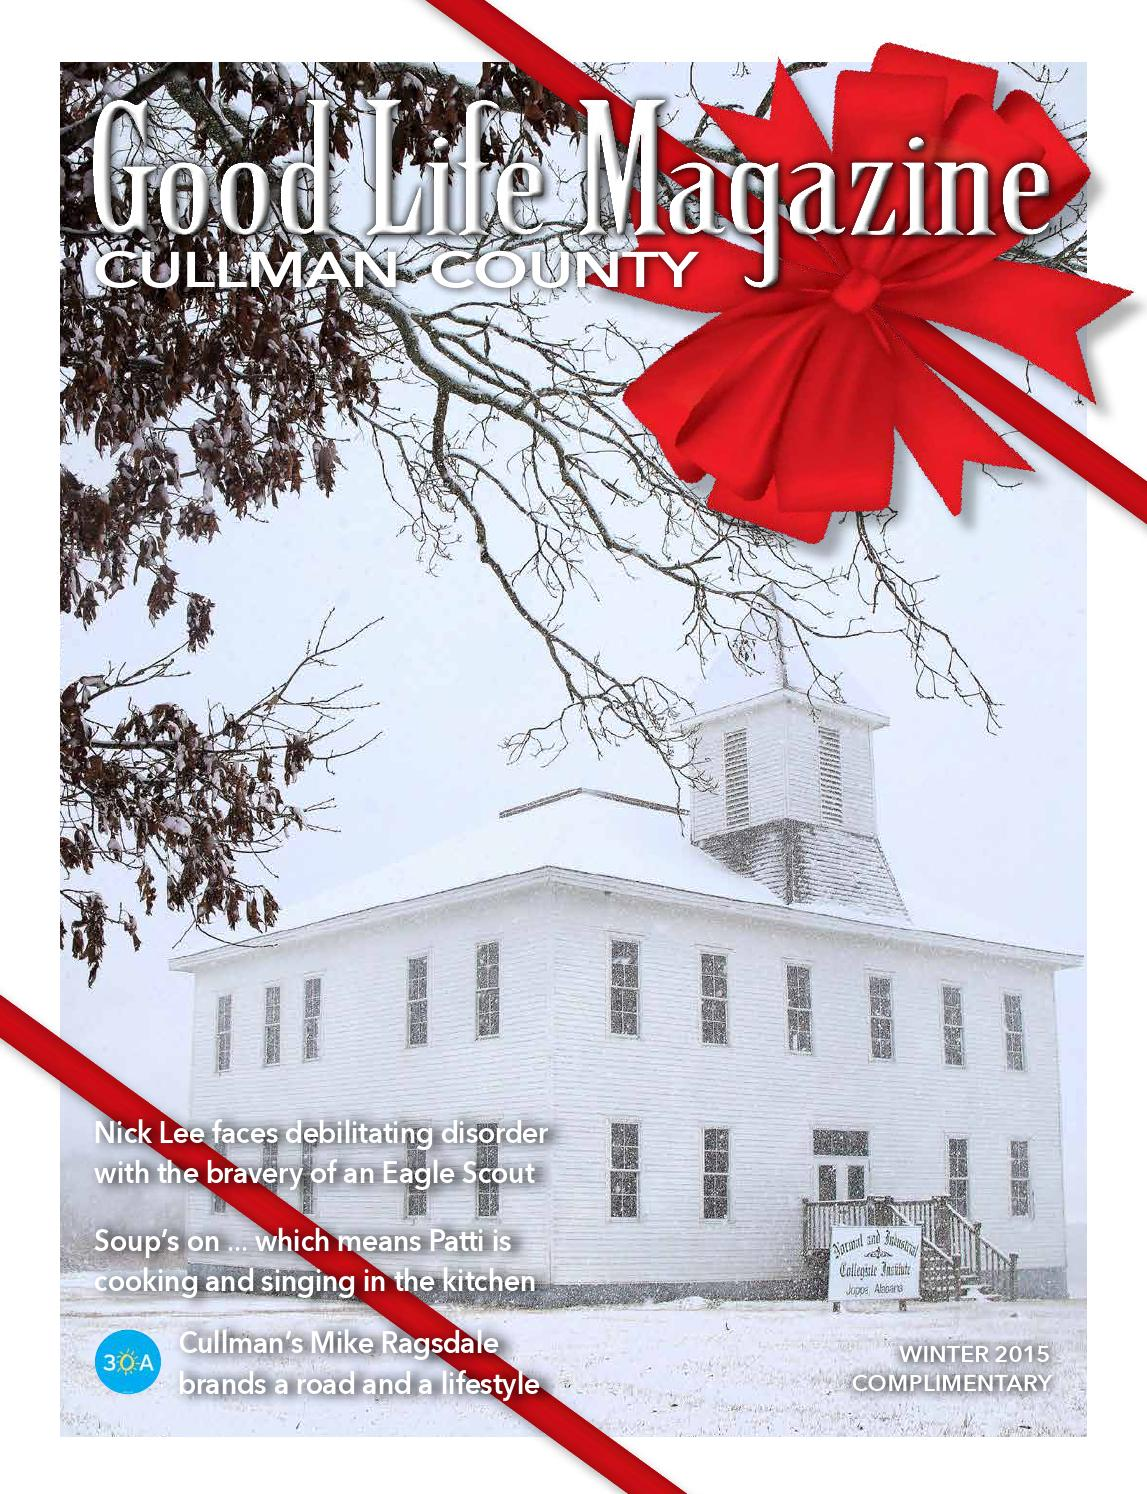 Bill Smith Gmc >> Cullman Good Life Magazine - Winter 2015 by The Good Life ...